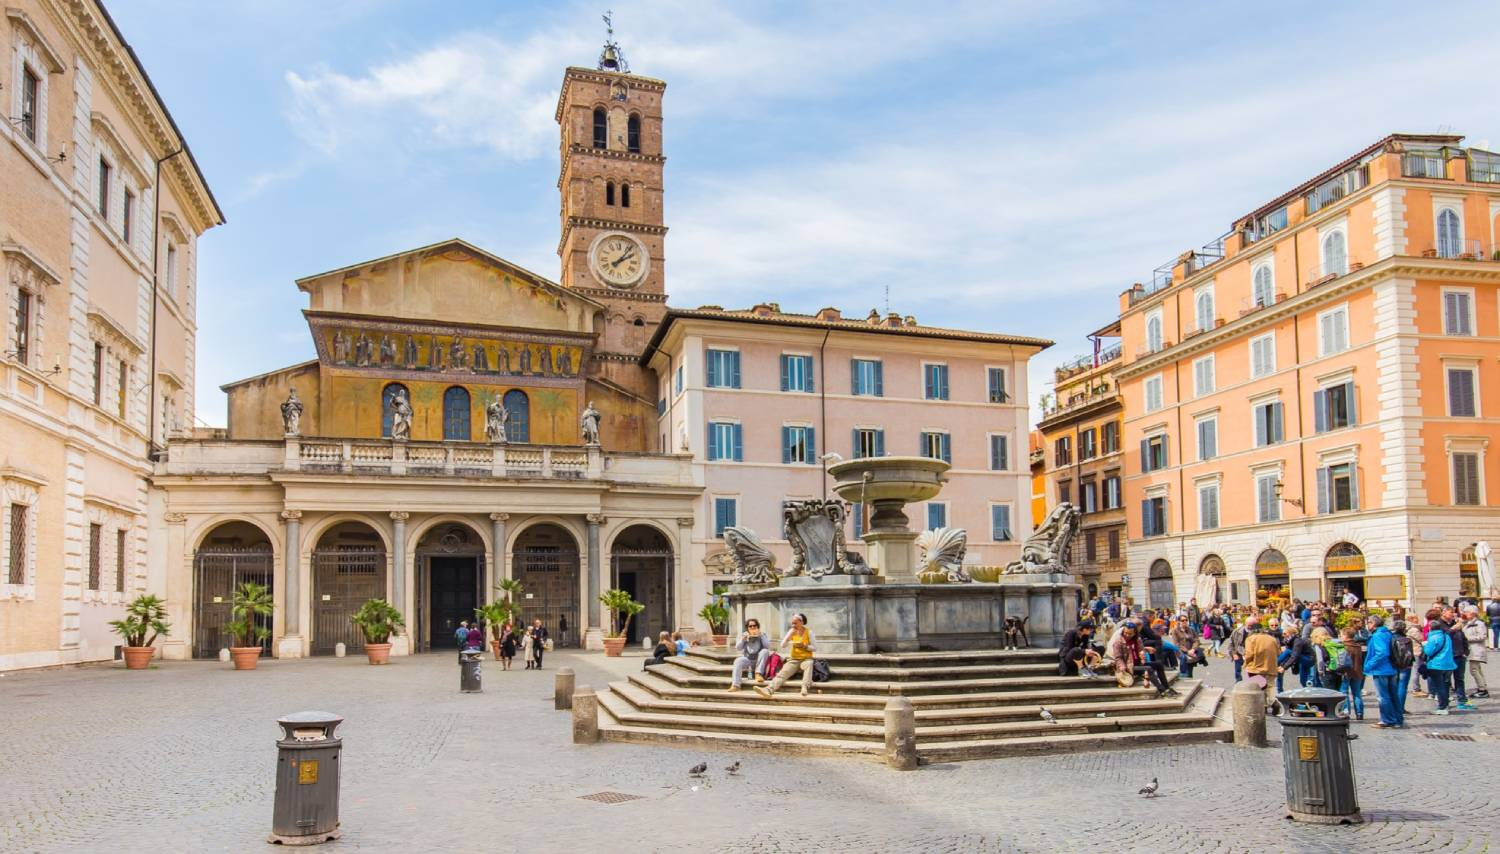 Piazza Santa Maria - Things To Do In Rome